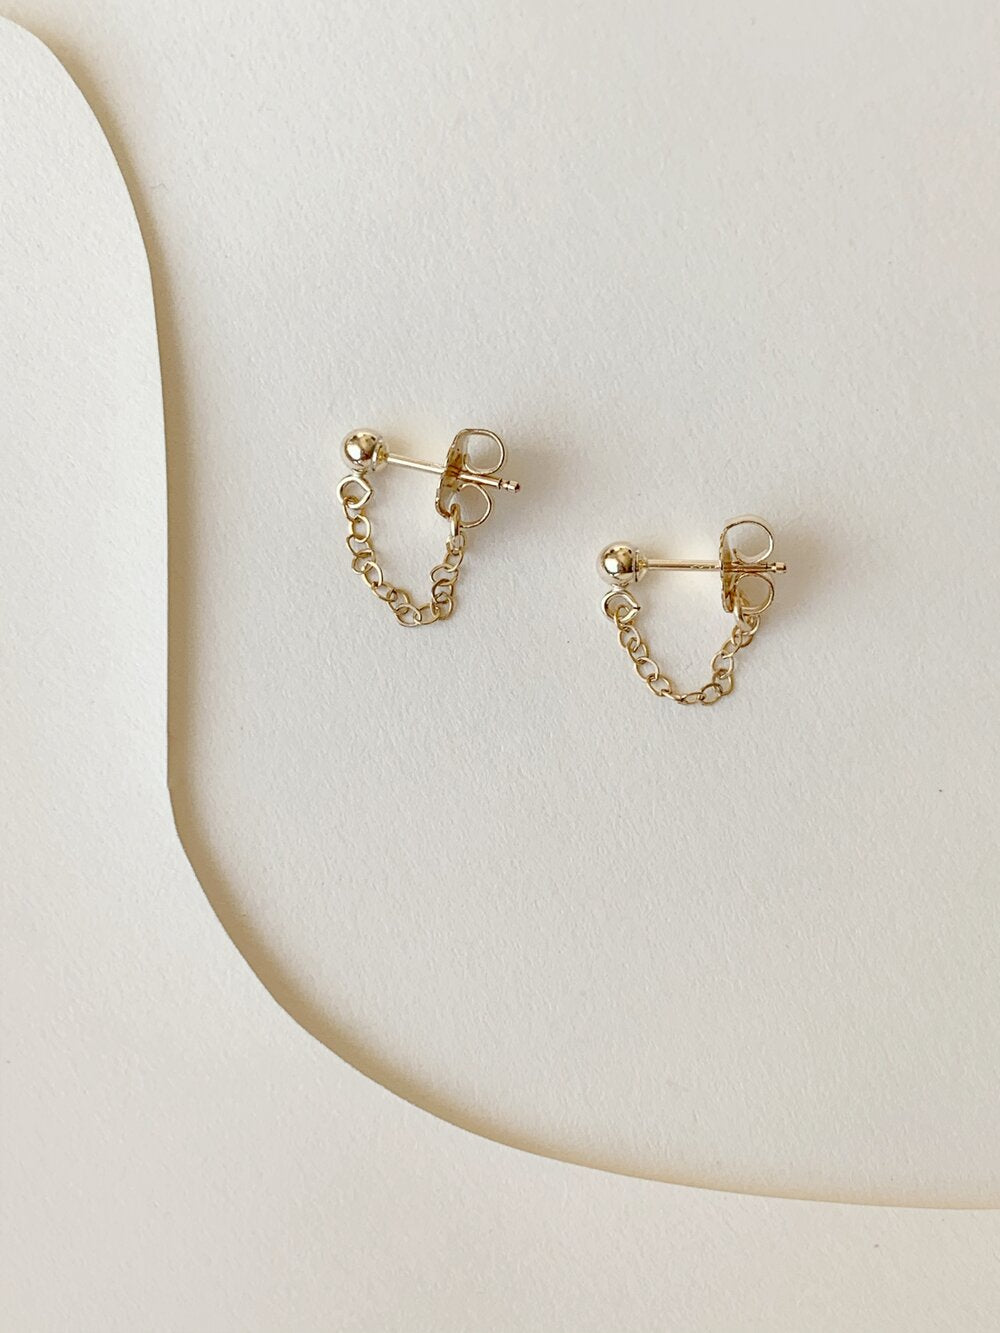 Tiny ball studs and delicate gold chain to wrap your earlobes. Handmade in Los Angeles.